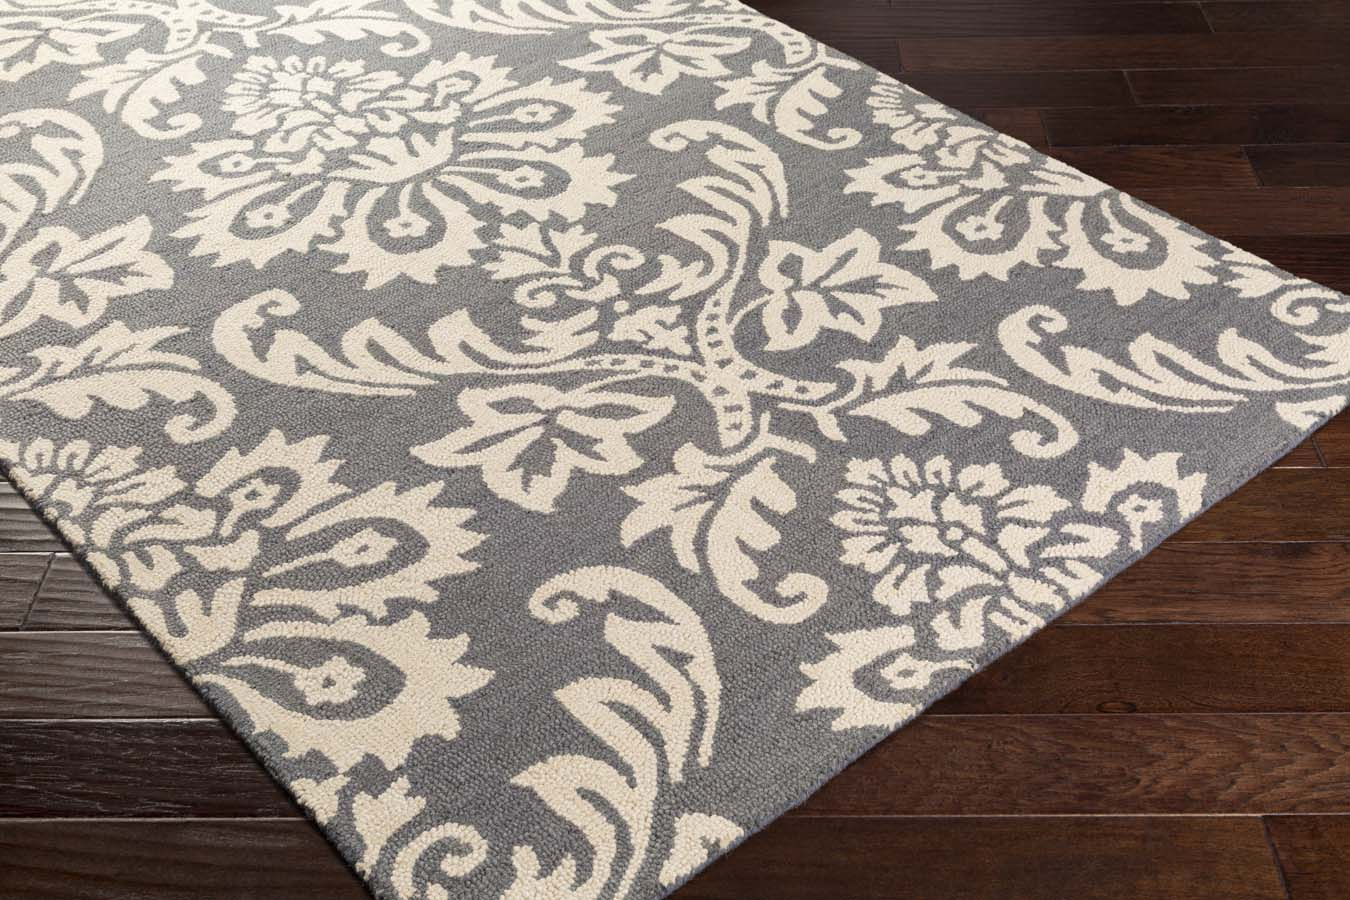 Artistic Weavers RHODES RDS-2322 Luna Dark Grey/Off-White Rug